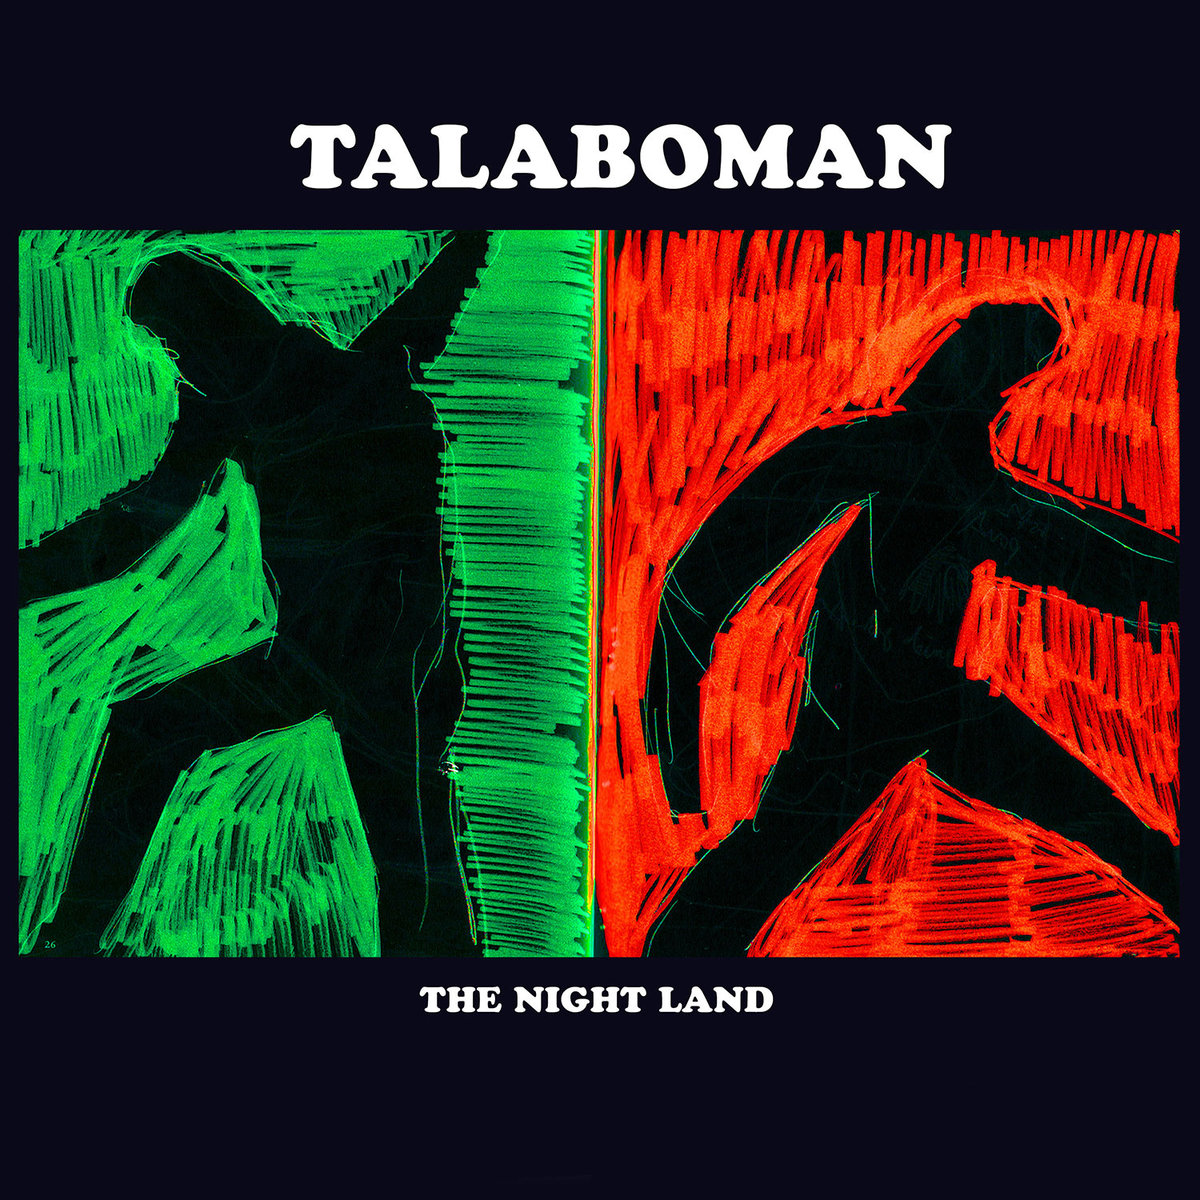 TALABOMAN (AXEL BOWMAN/JOHN TALABOT-THE NIGHT LAND